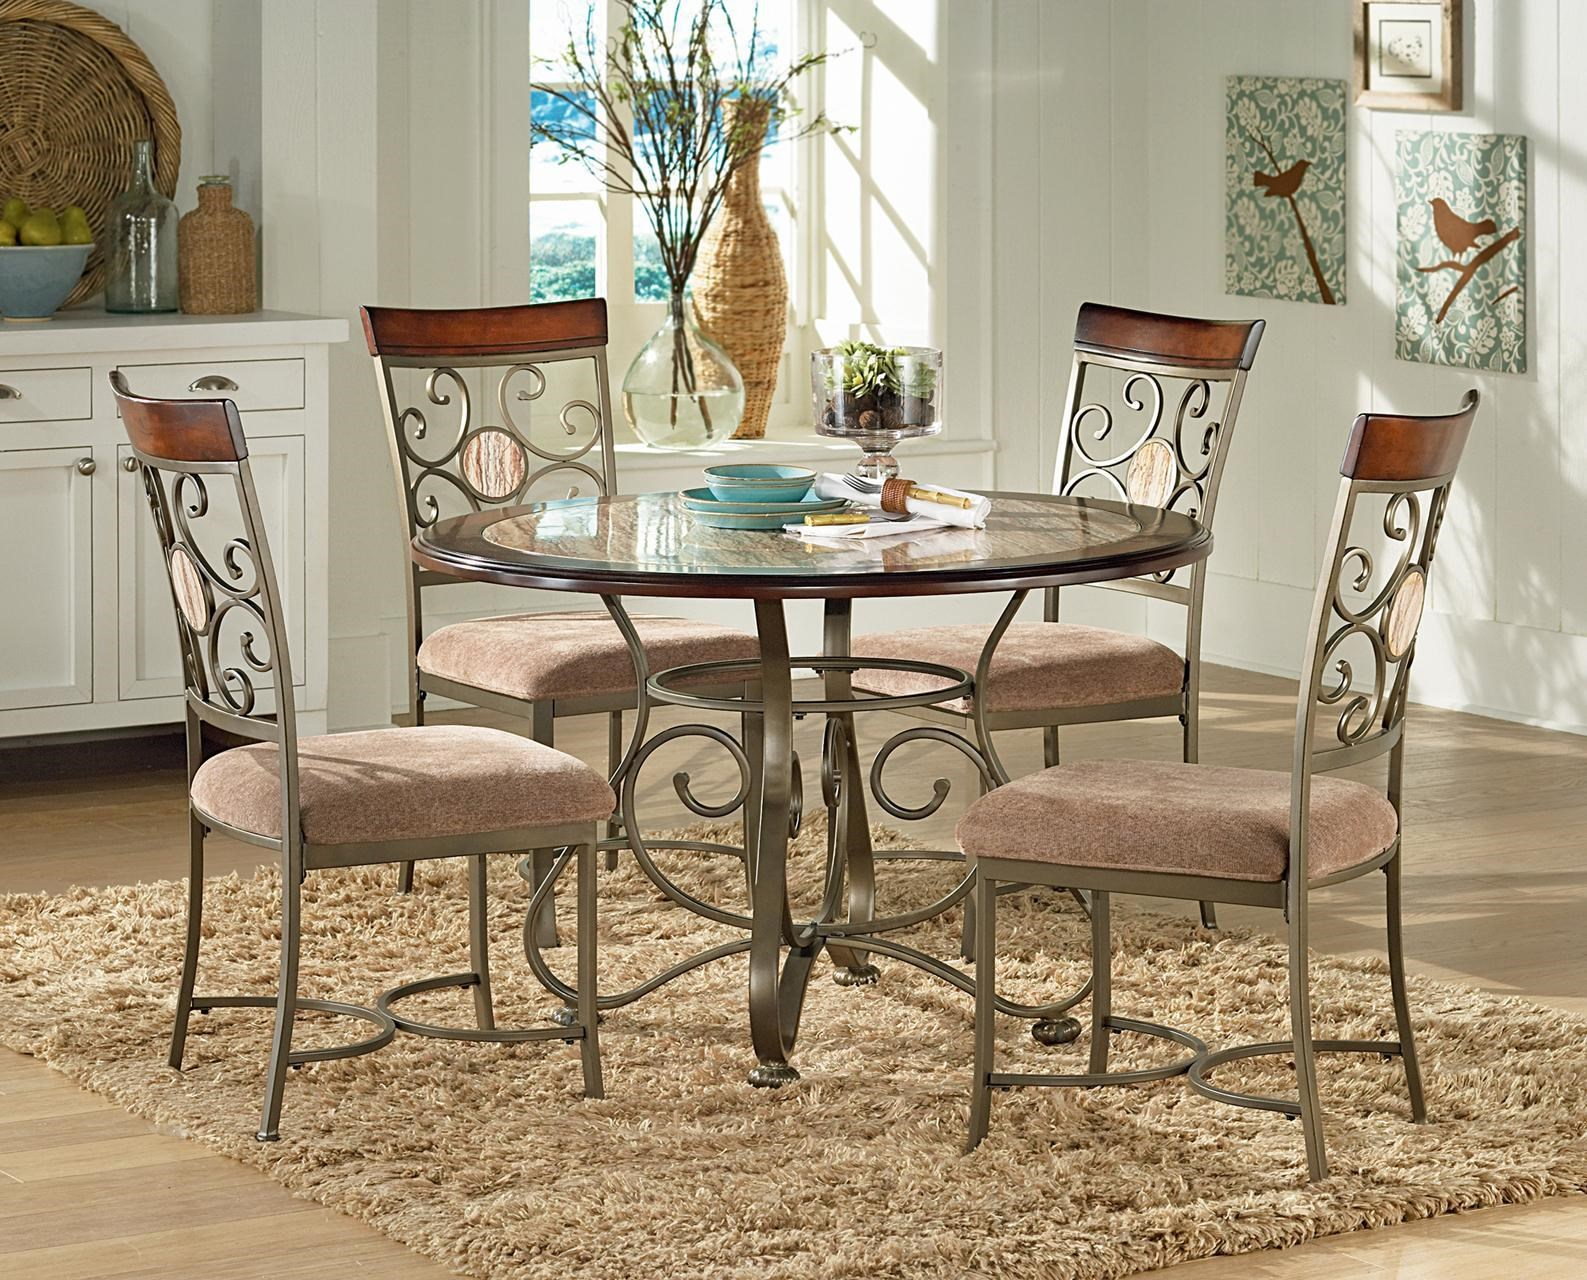 Steve Silver Thompson Dining Table With Metal Base U0026 U0026 4 Side Chairs    Great American Home Store   Dining 5 Piece Set